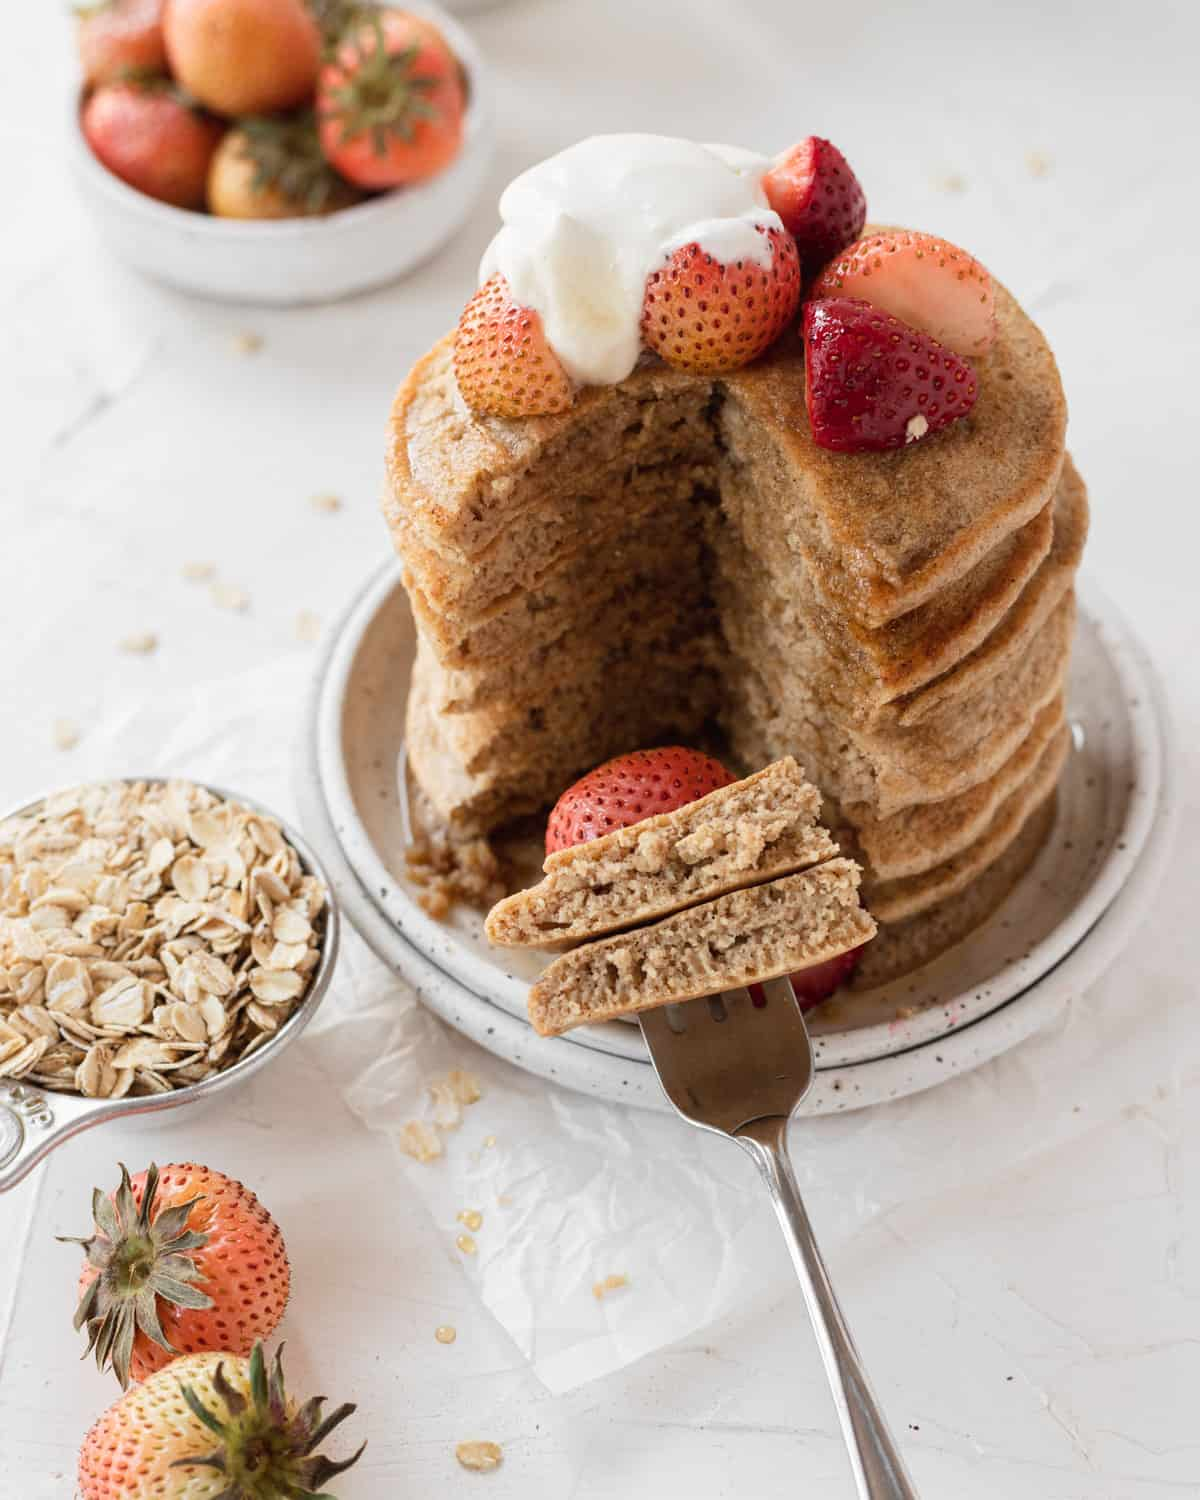 stack of pancake with a slice cut out of them, fork full of pancakes, next to a cup of oats.